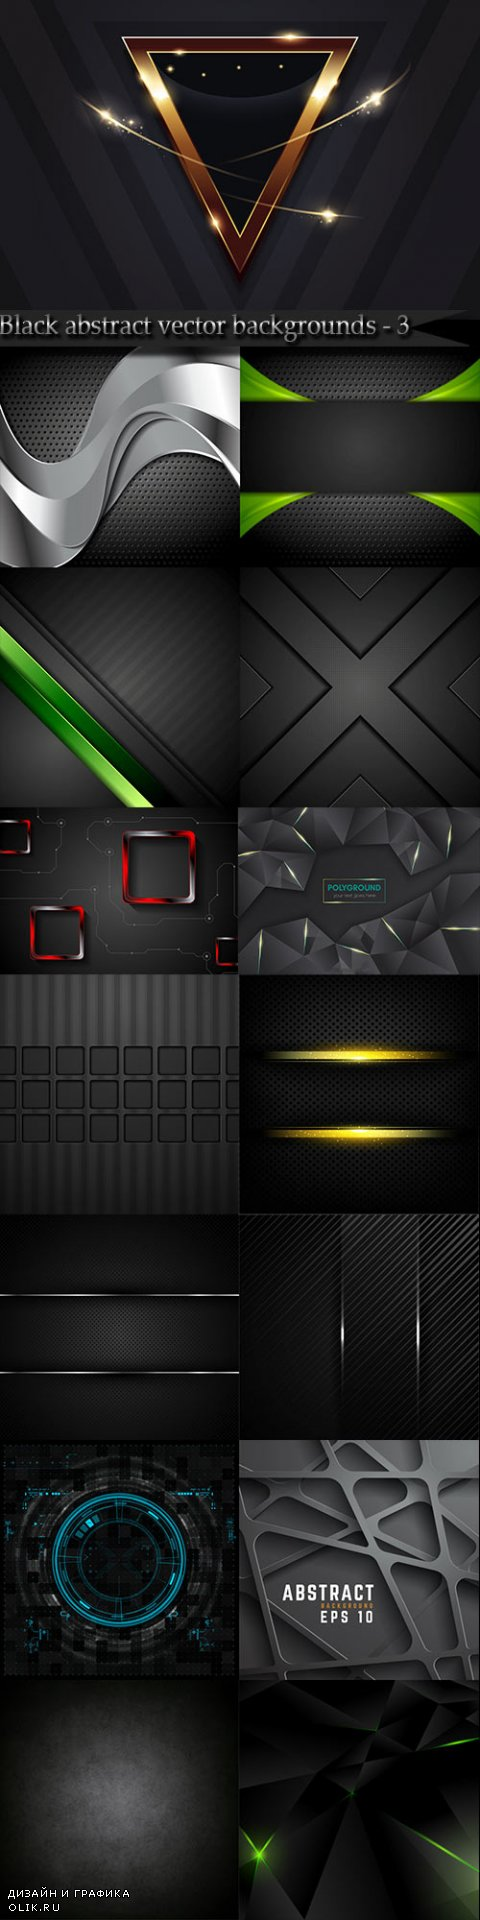 Black abstract vector backgrounds - 3